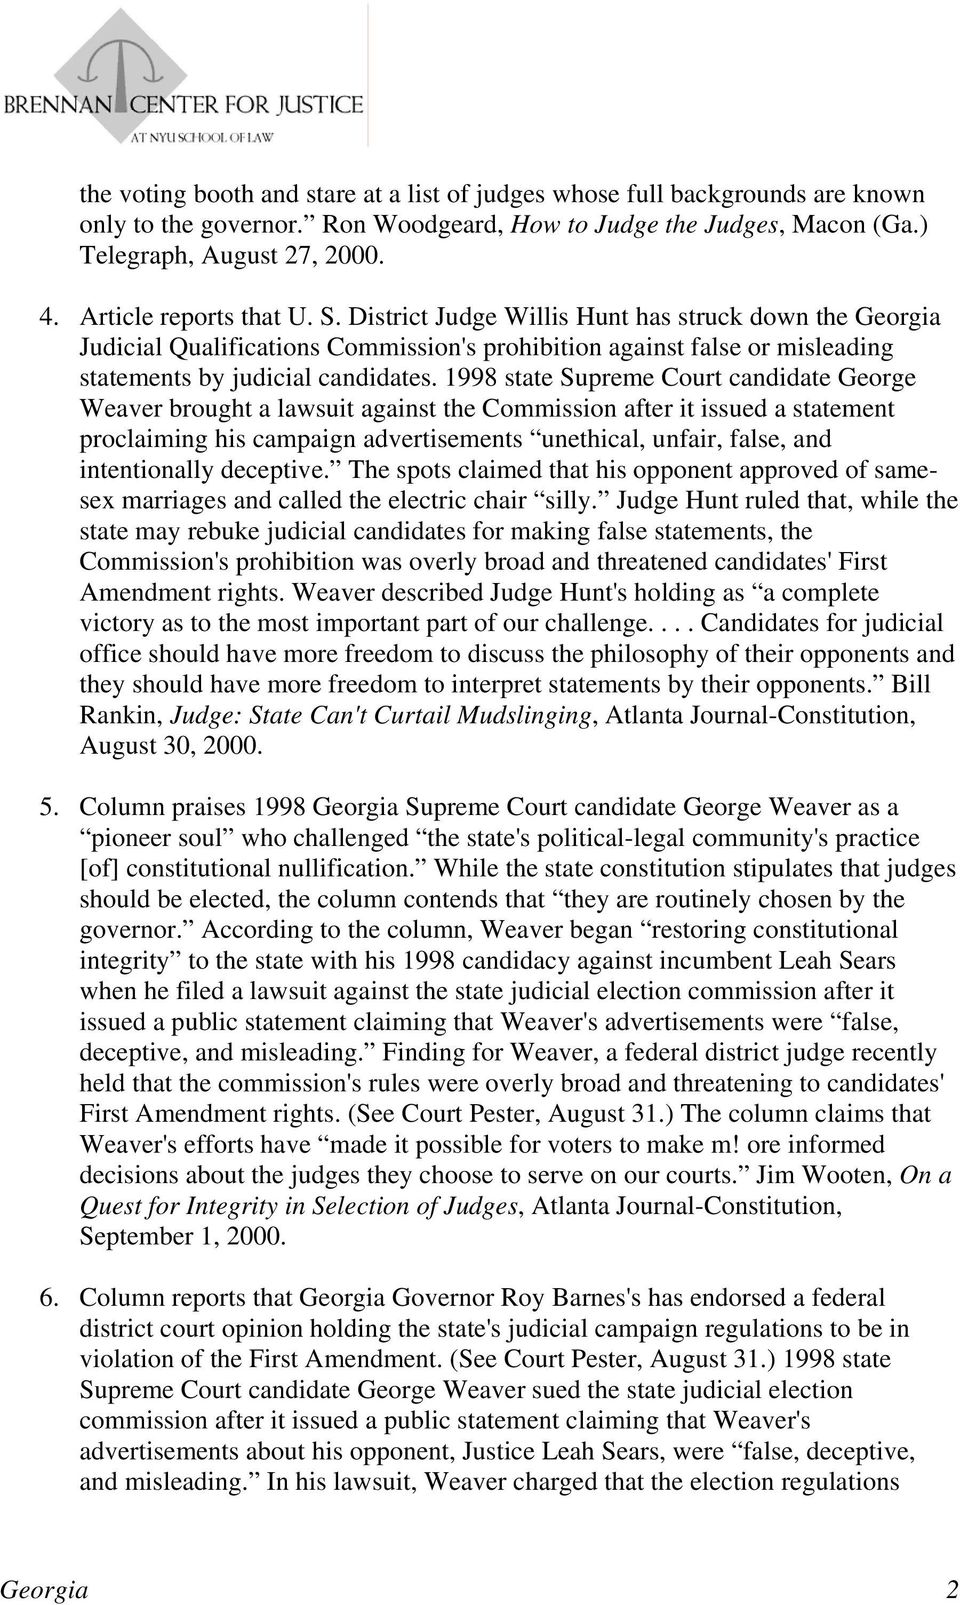 1998 state Supreme Court candidate George Weaver brought a lawsuit against the Commission after it issued a statement proclaiming his campaign advertisements unethical, unfair, false, and